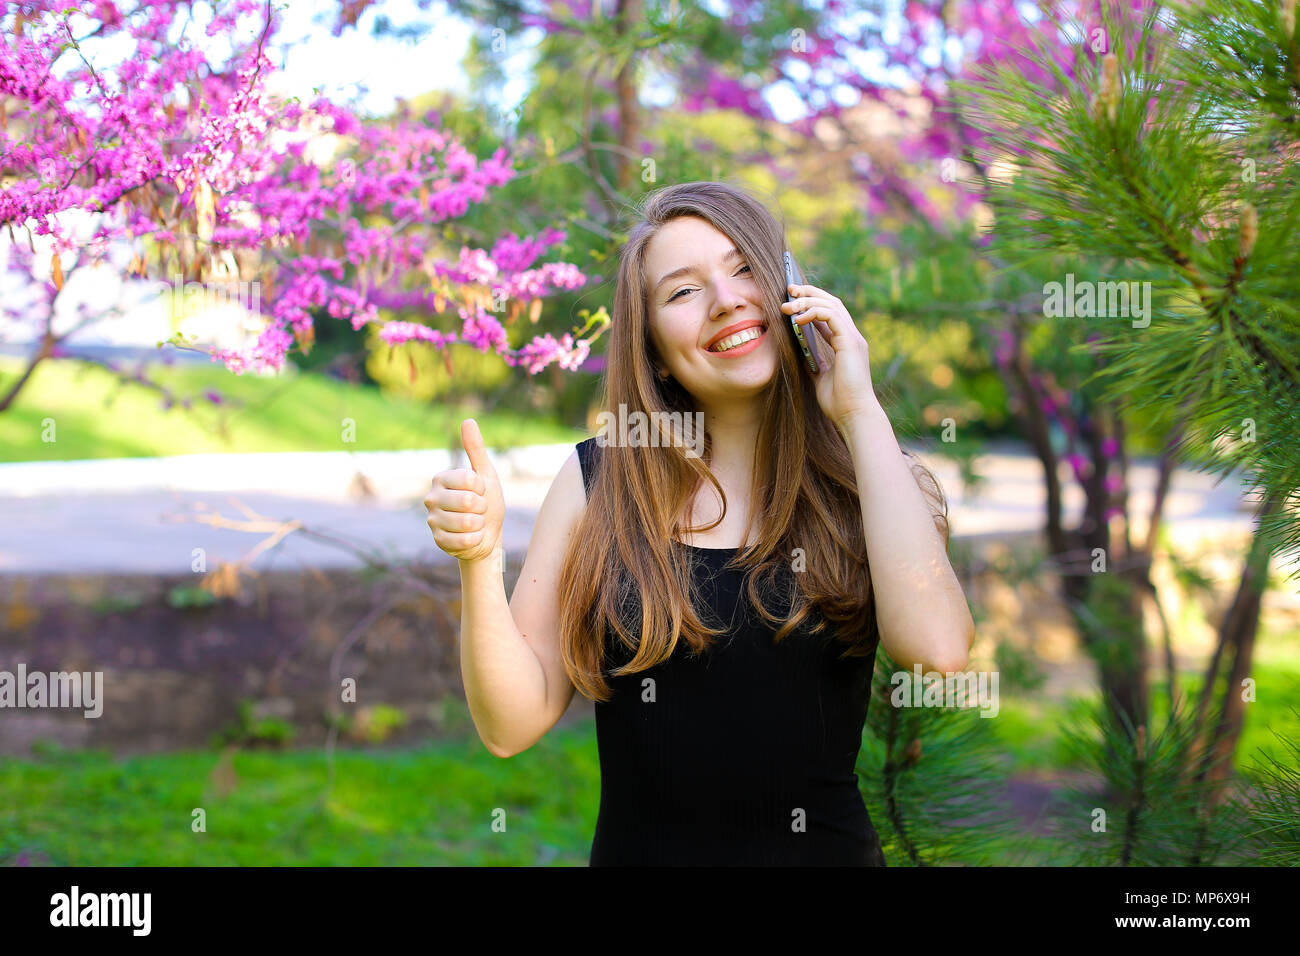 Young female person talking by smartphone and showing thumbs up in spring park. - Stock Image